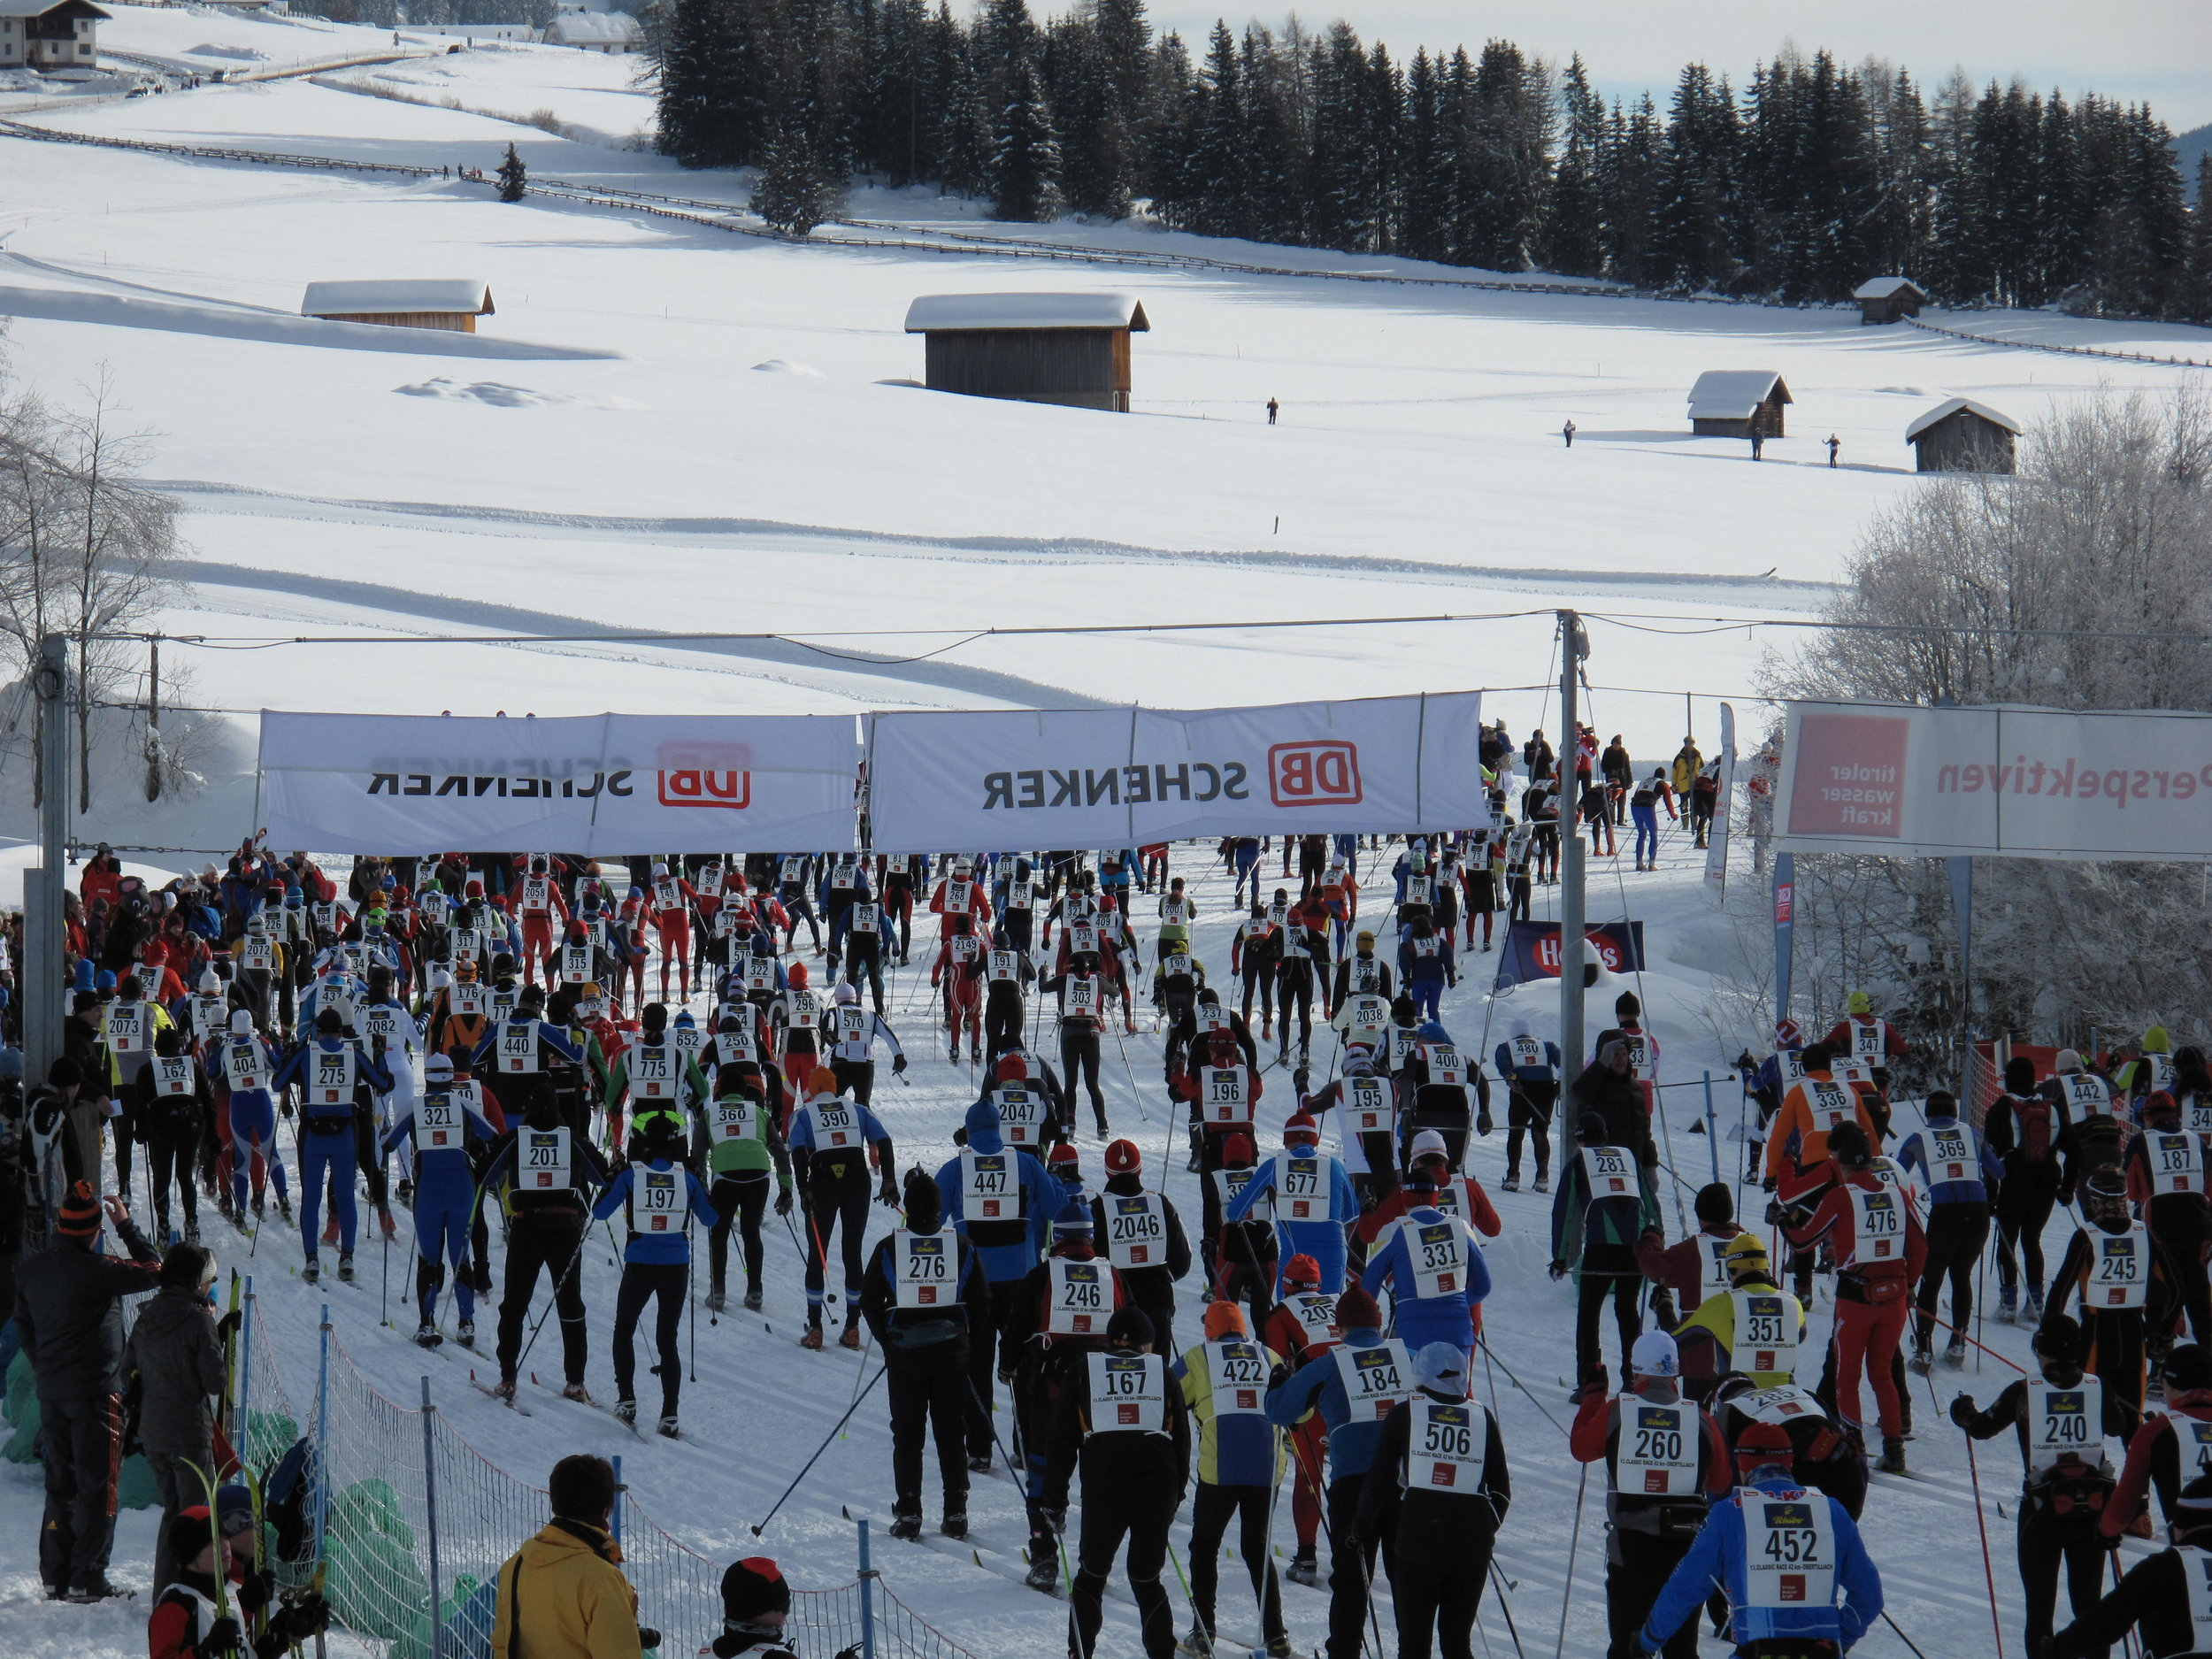 Dolomitenlauf classic race start